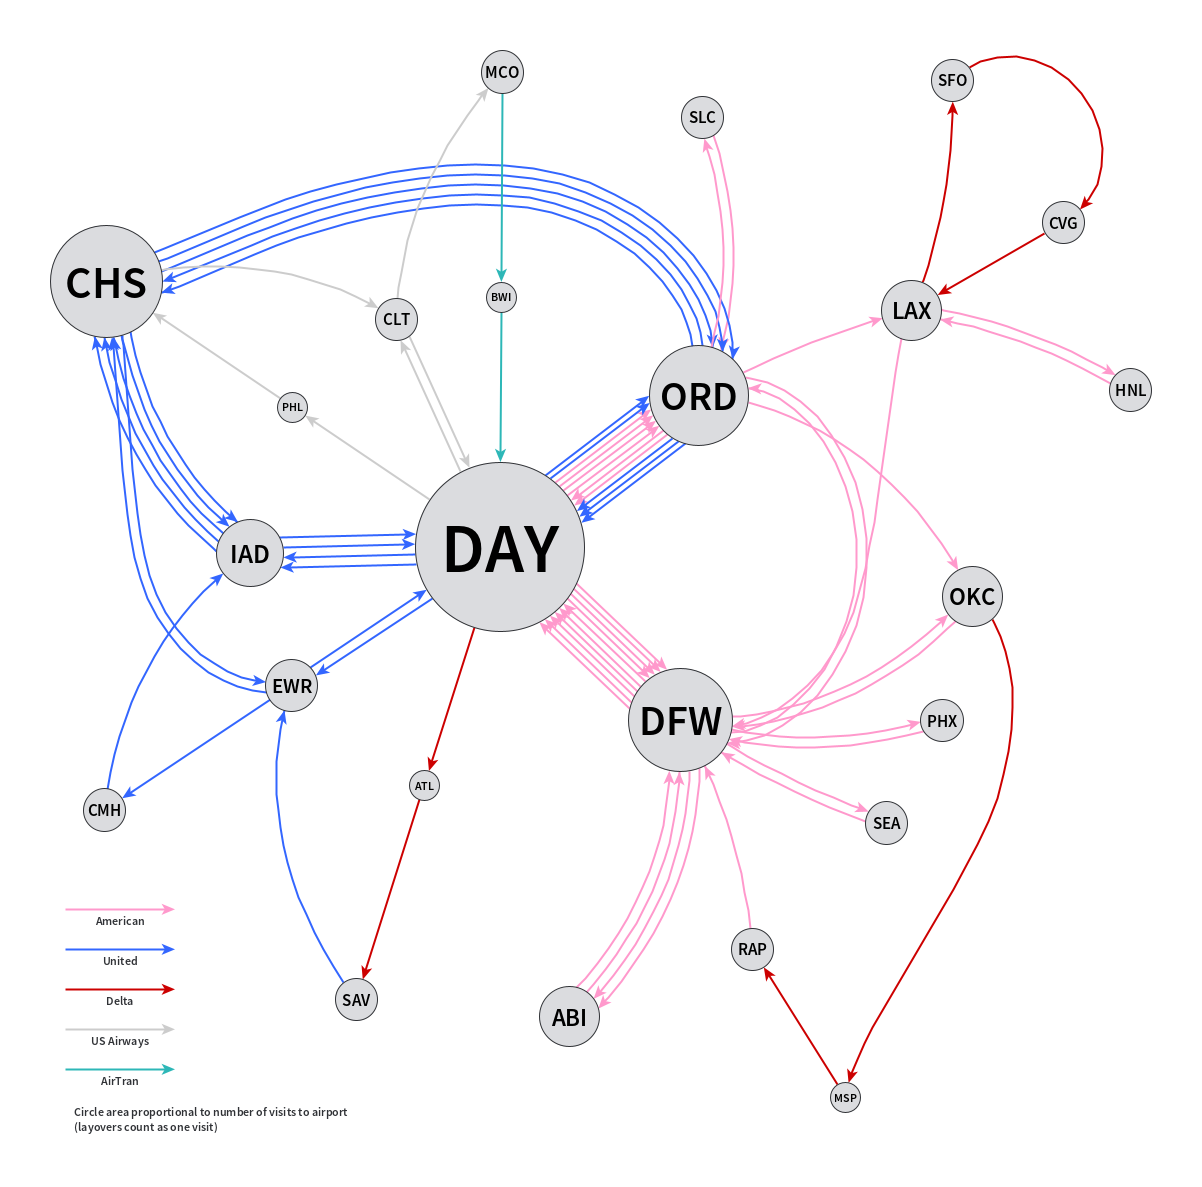 Directed graph for 2012 flights